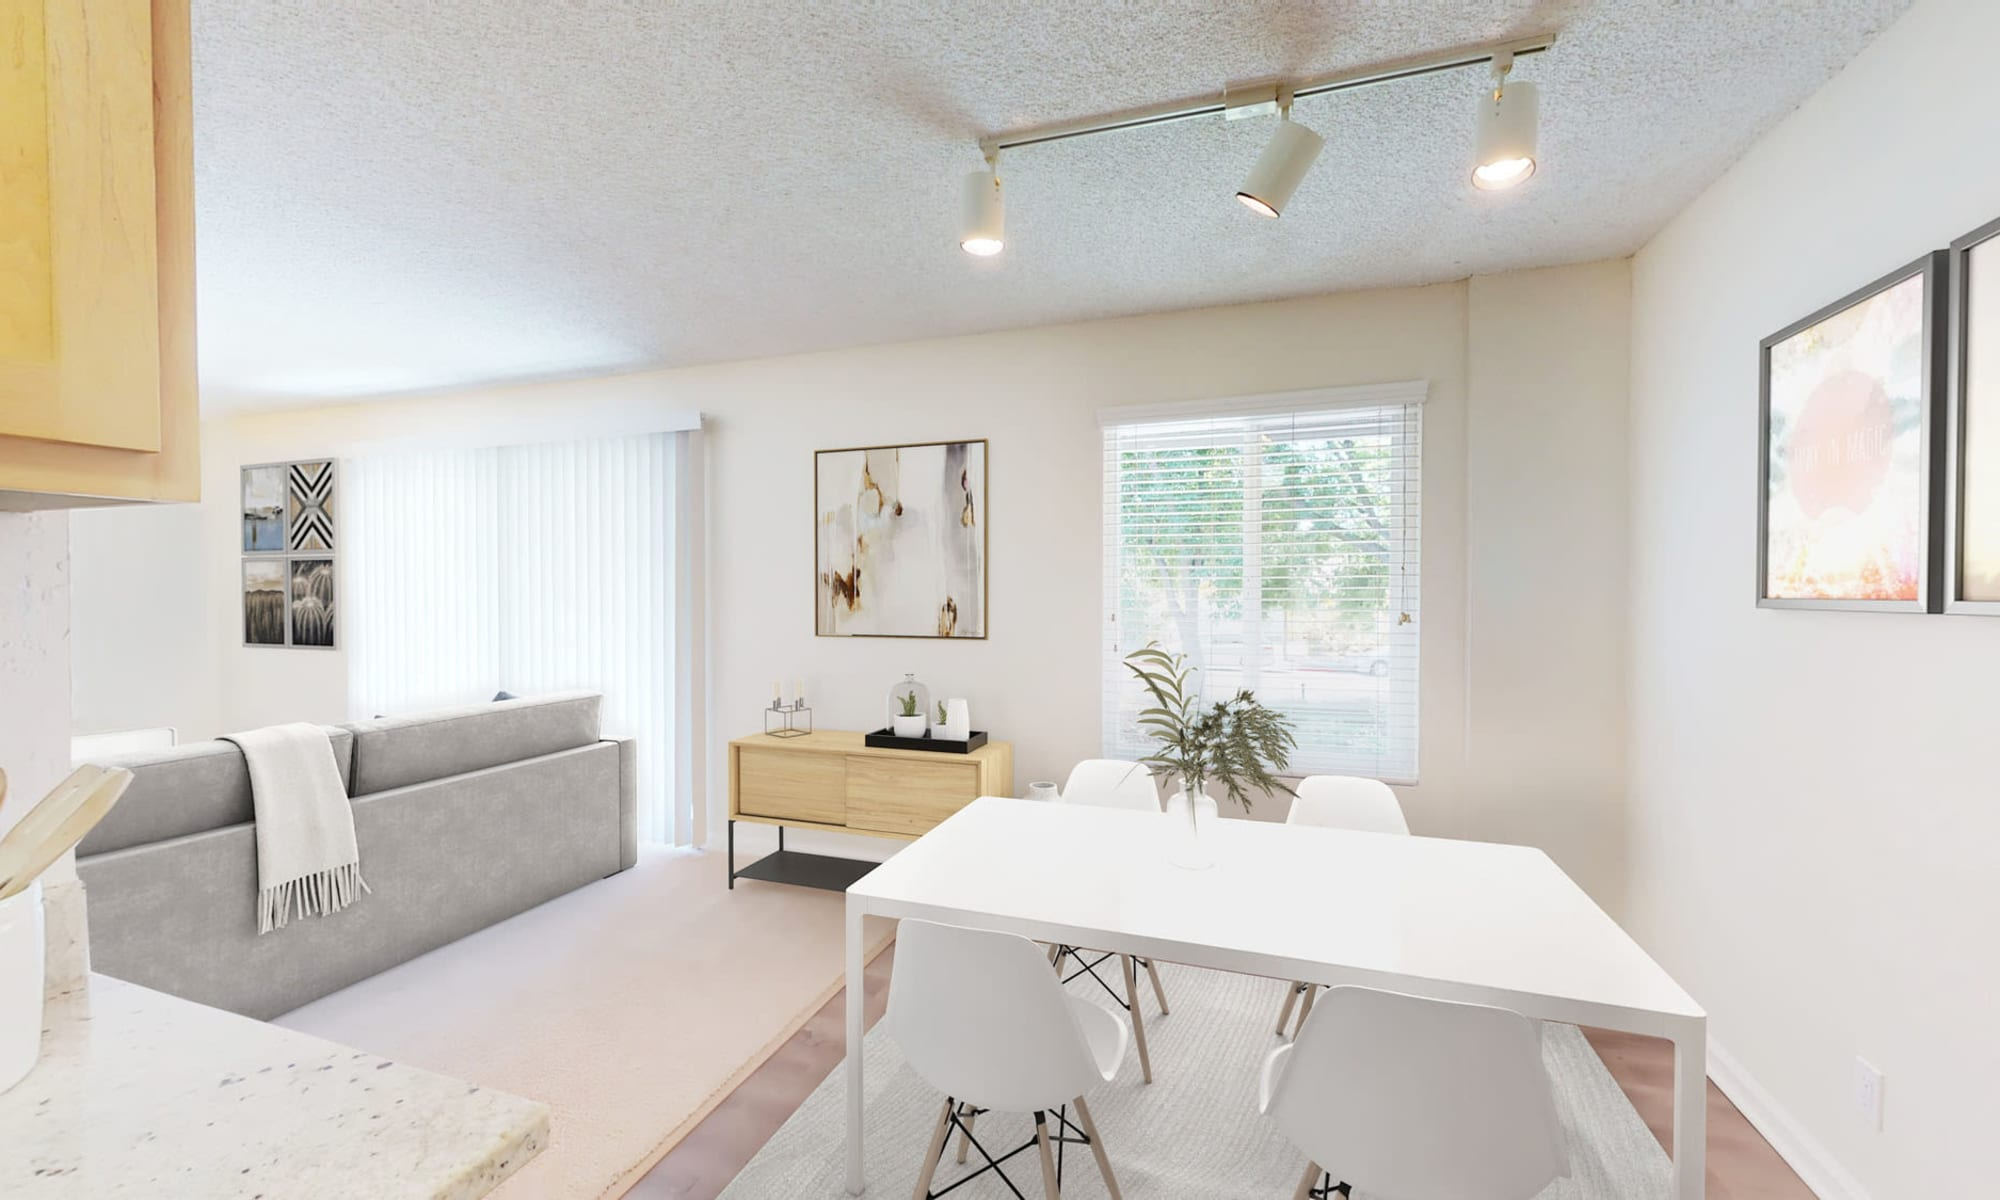 Ample natural light filling the living areas of a model home at Pleasanton Glen Apartment Homes in Pleasanton, California